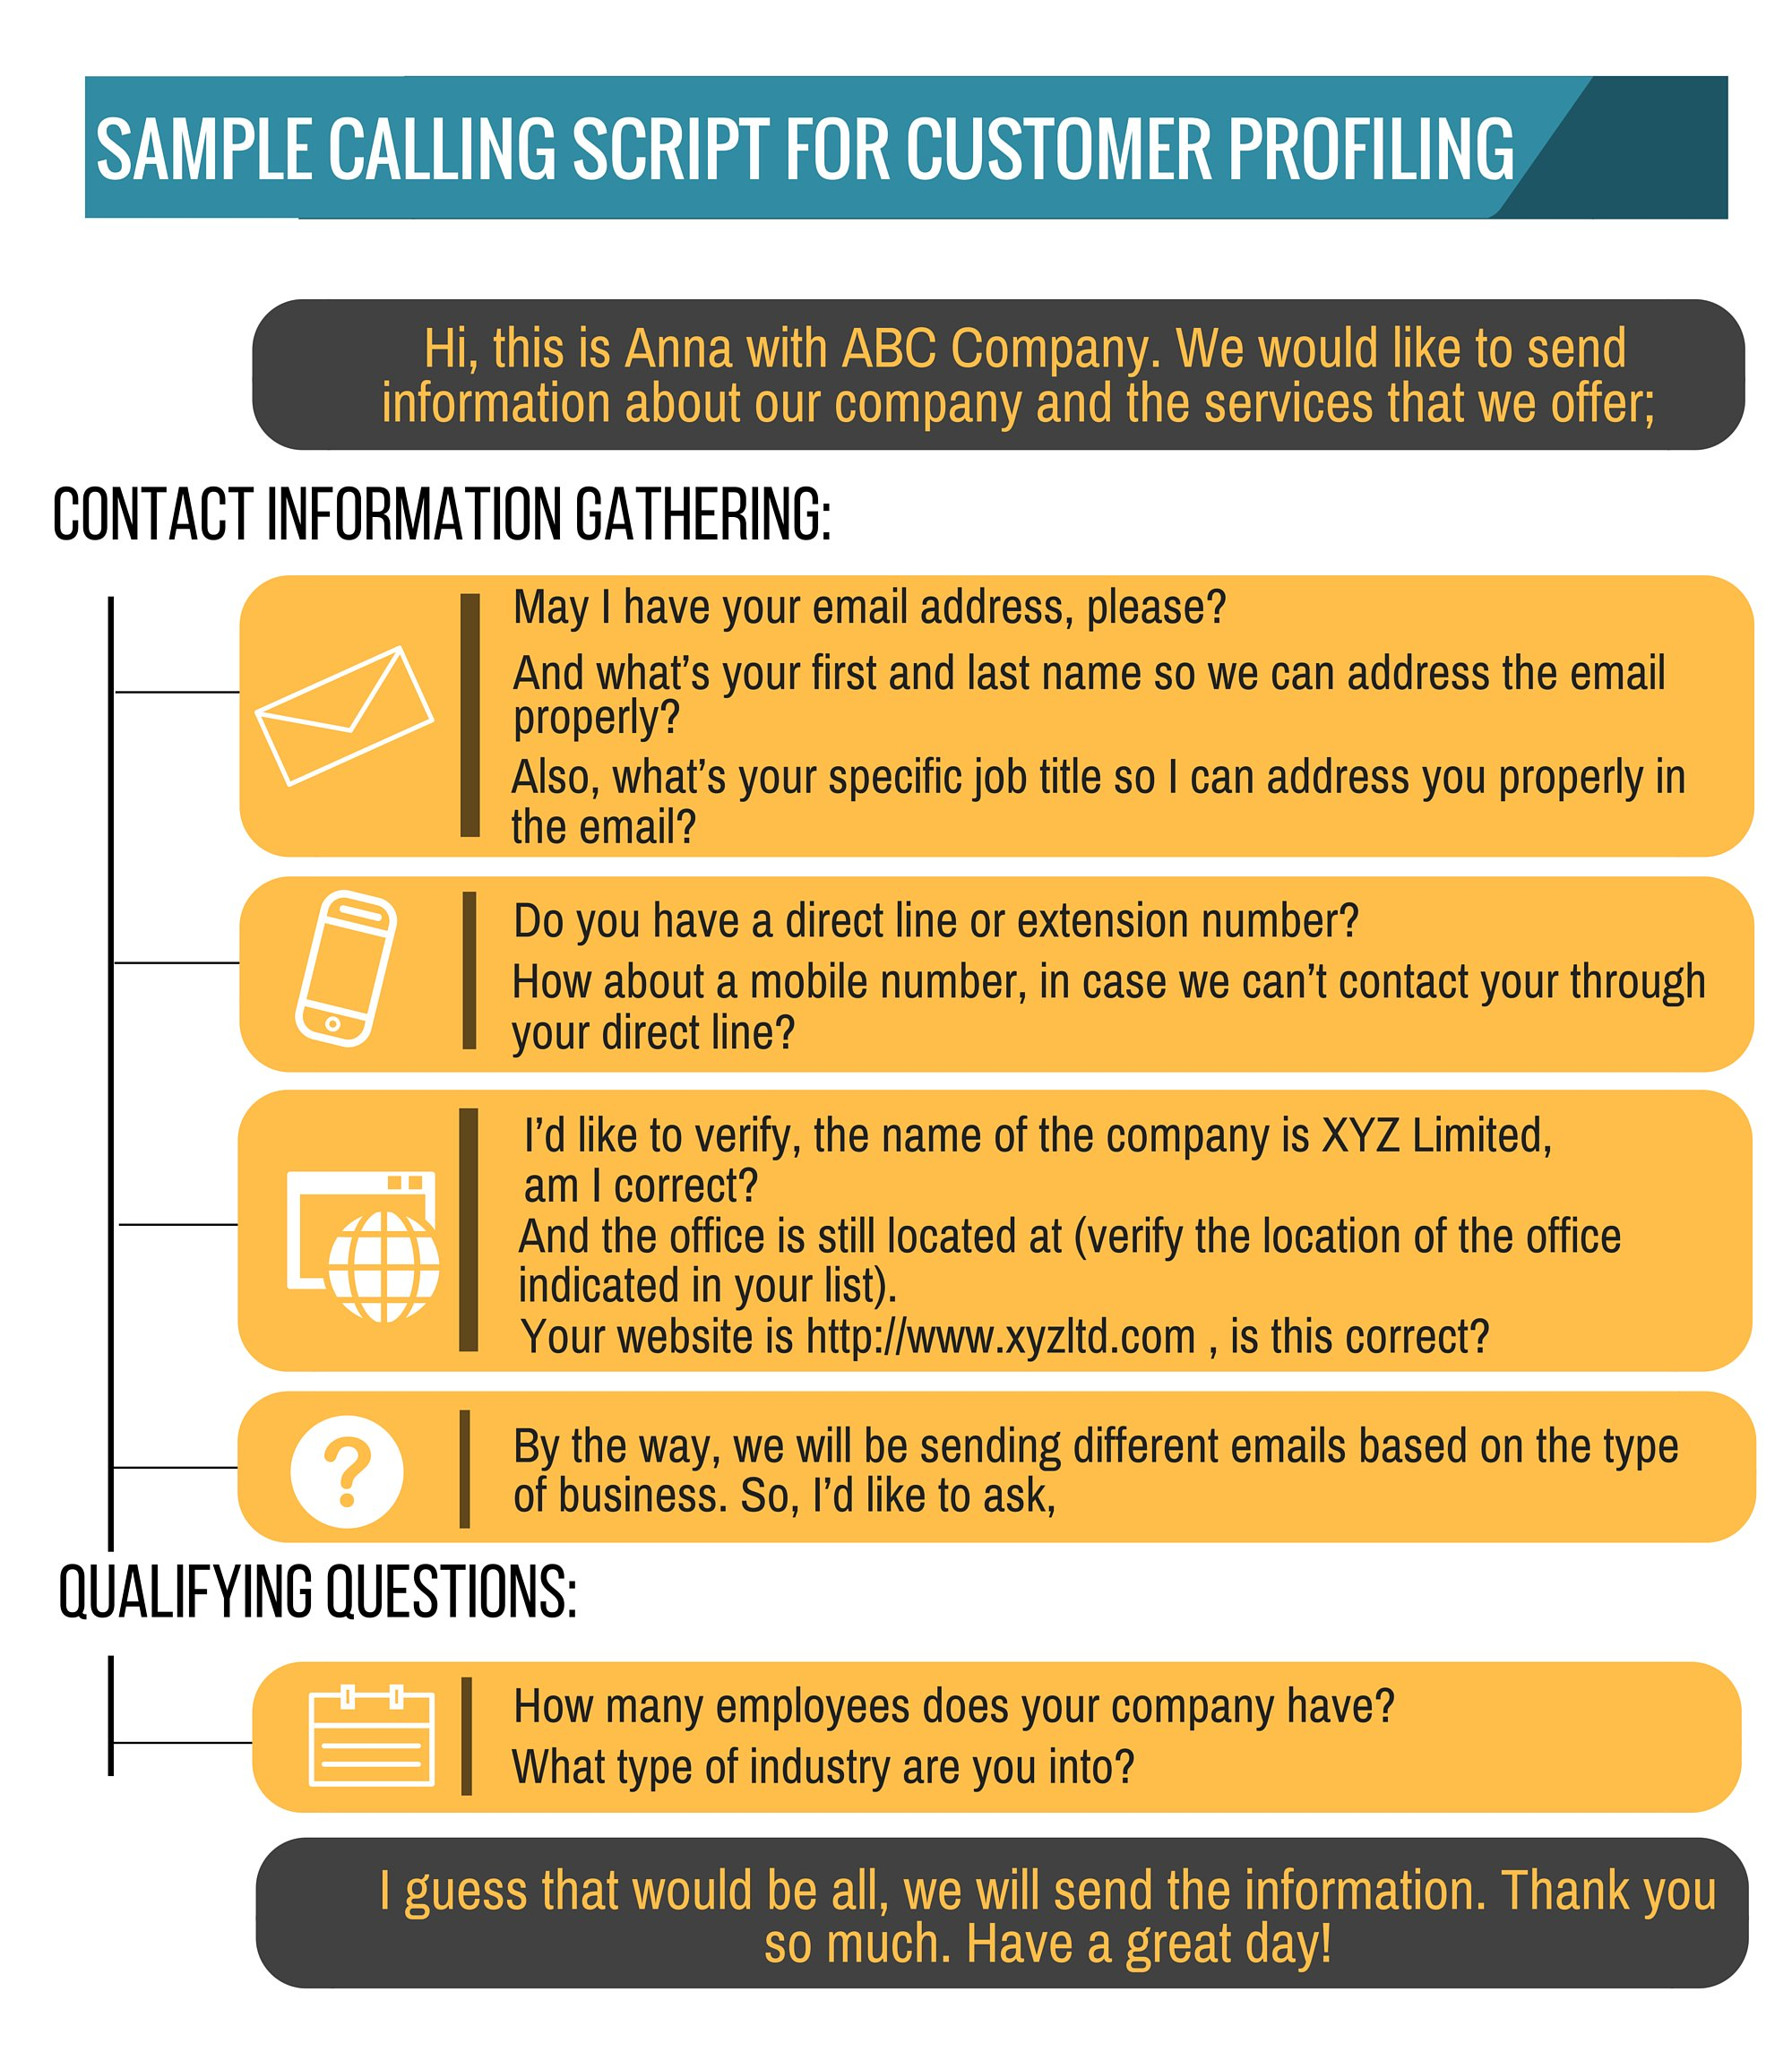 customer profiling script - Callbox